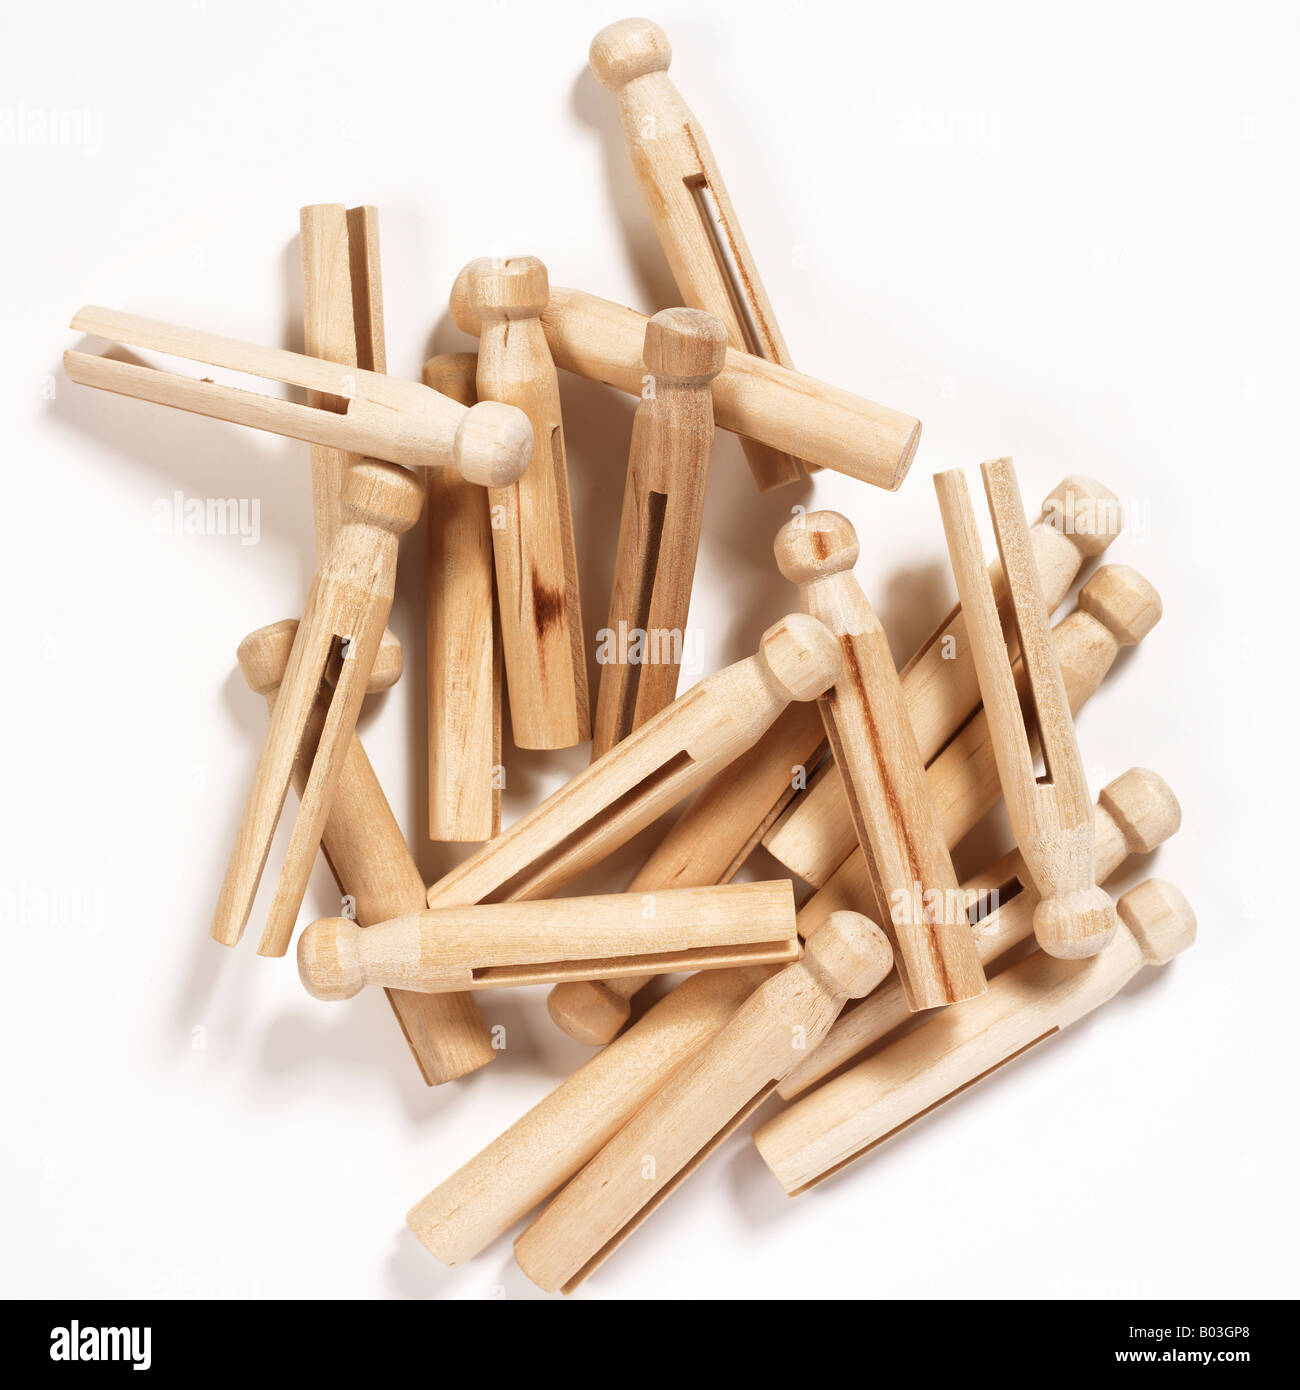 wood clothespins - Stock Image